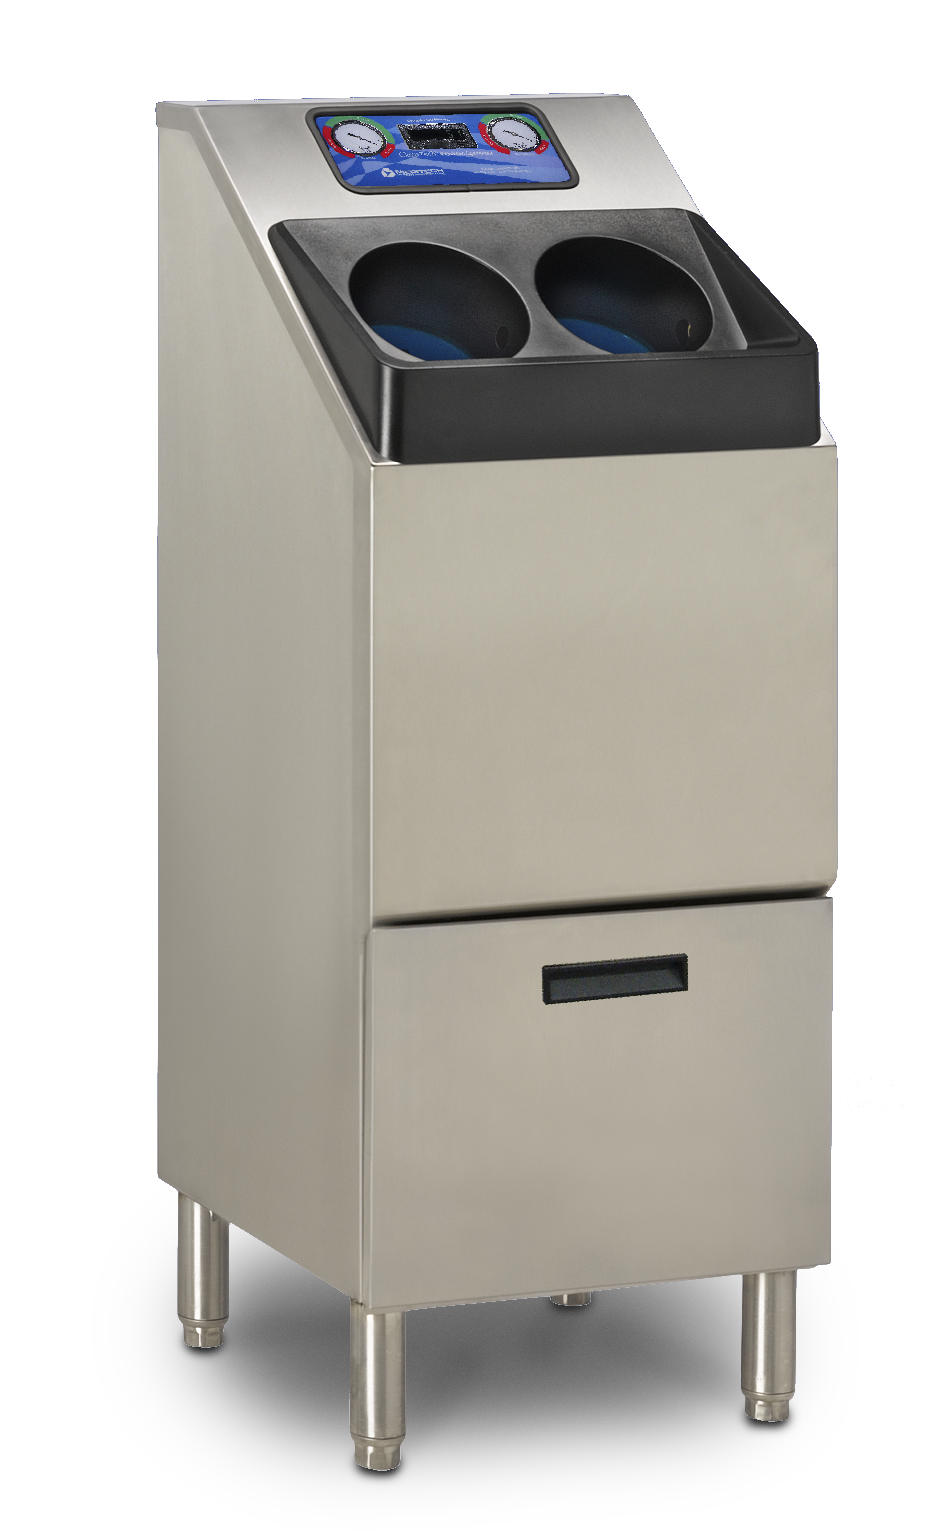 CleanTech 2000S Self-Cleaning Industrial Handwashing Station